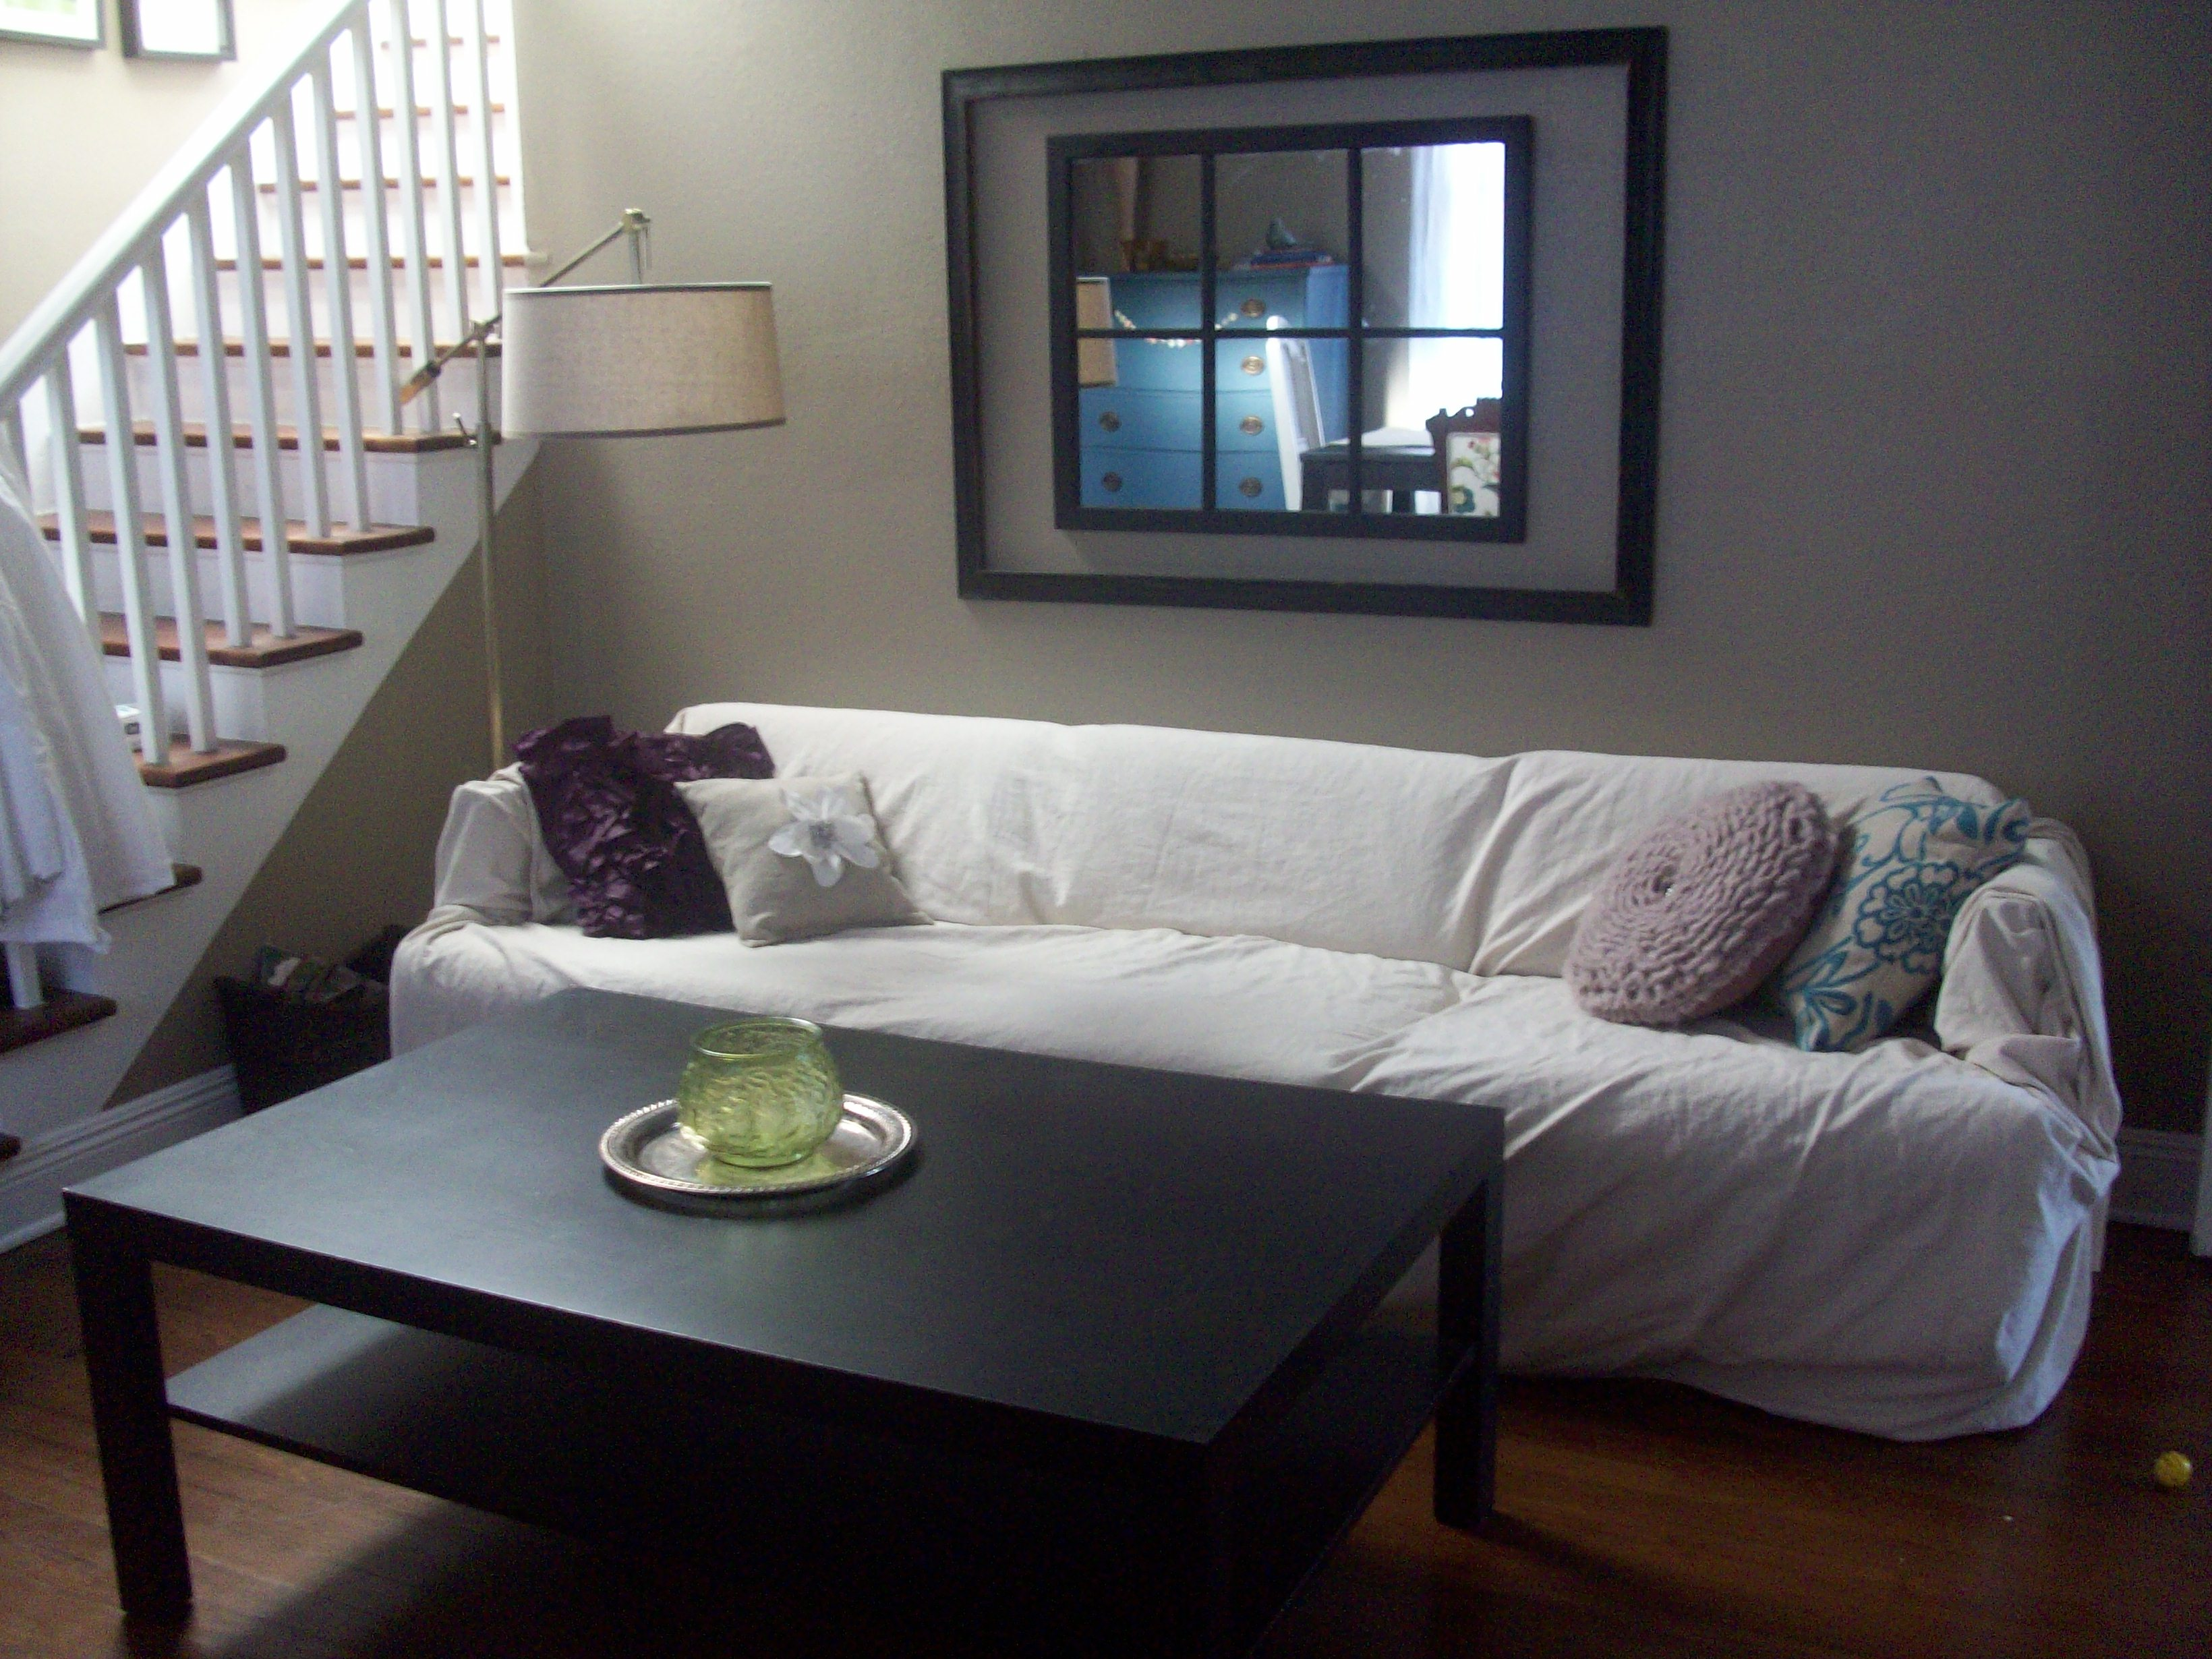 Transform an Ugly Sofa with a Dropcloth Slipcover